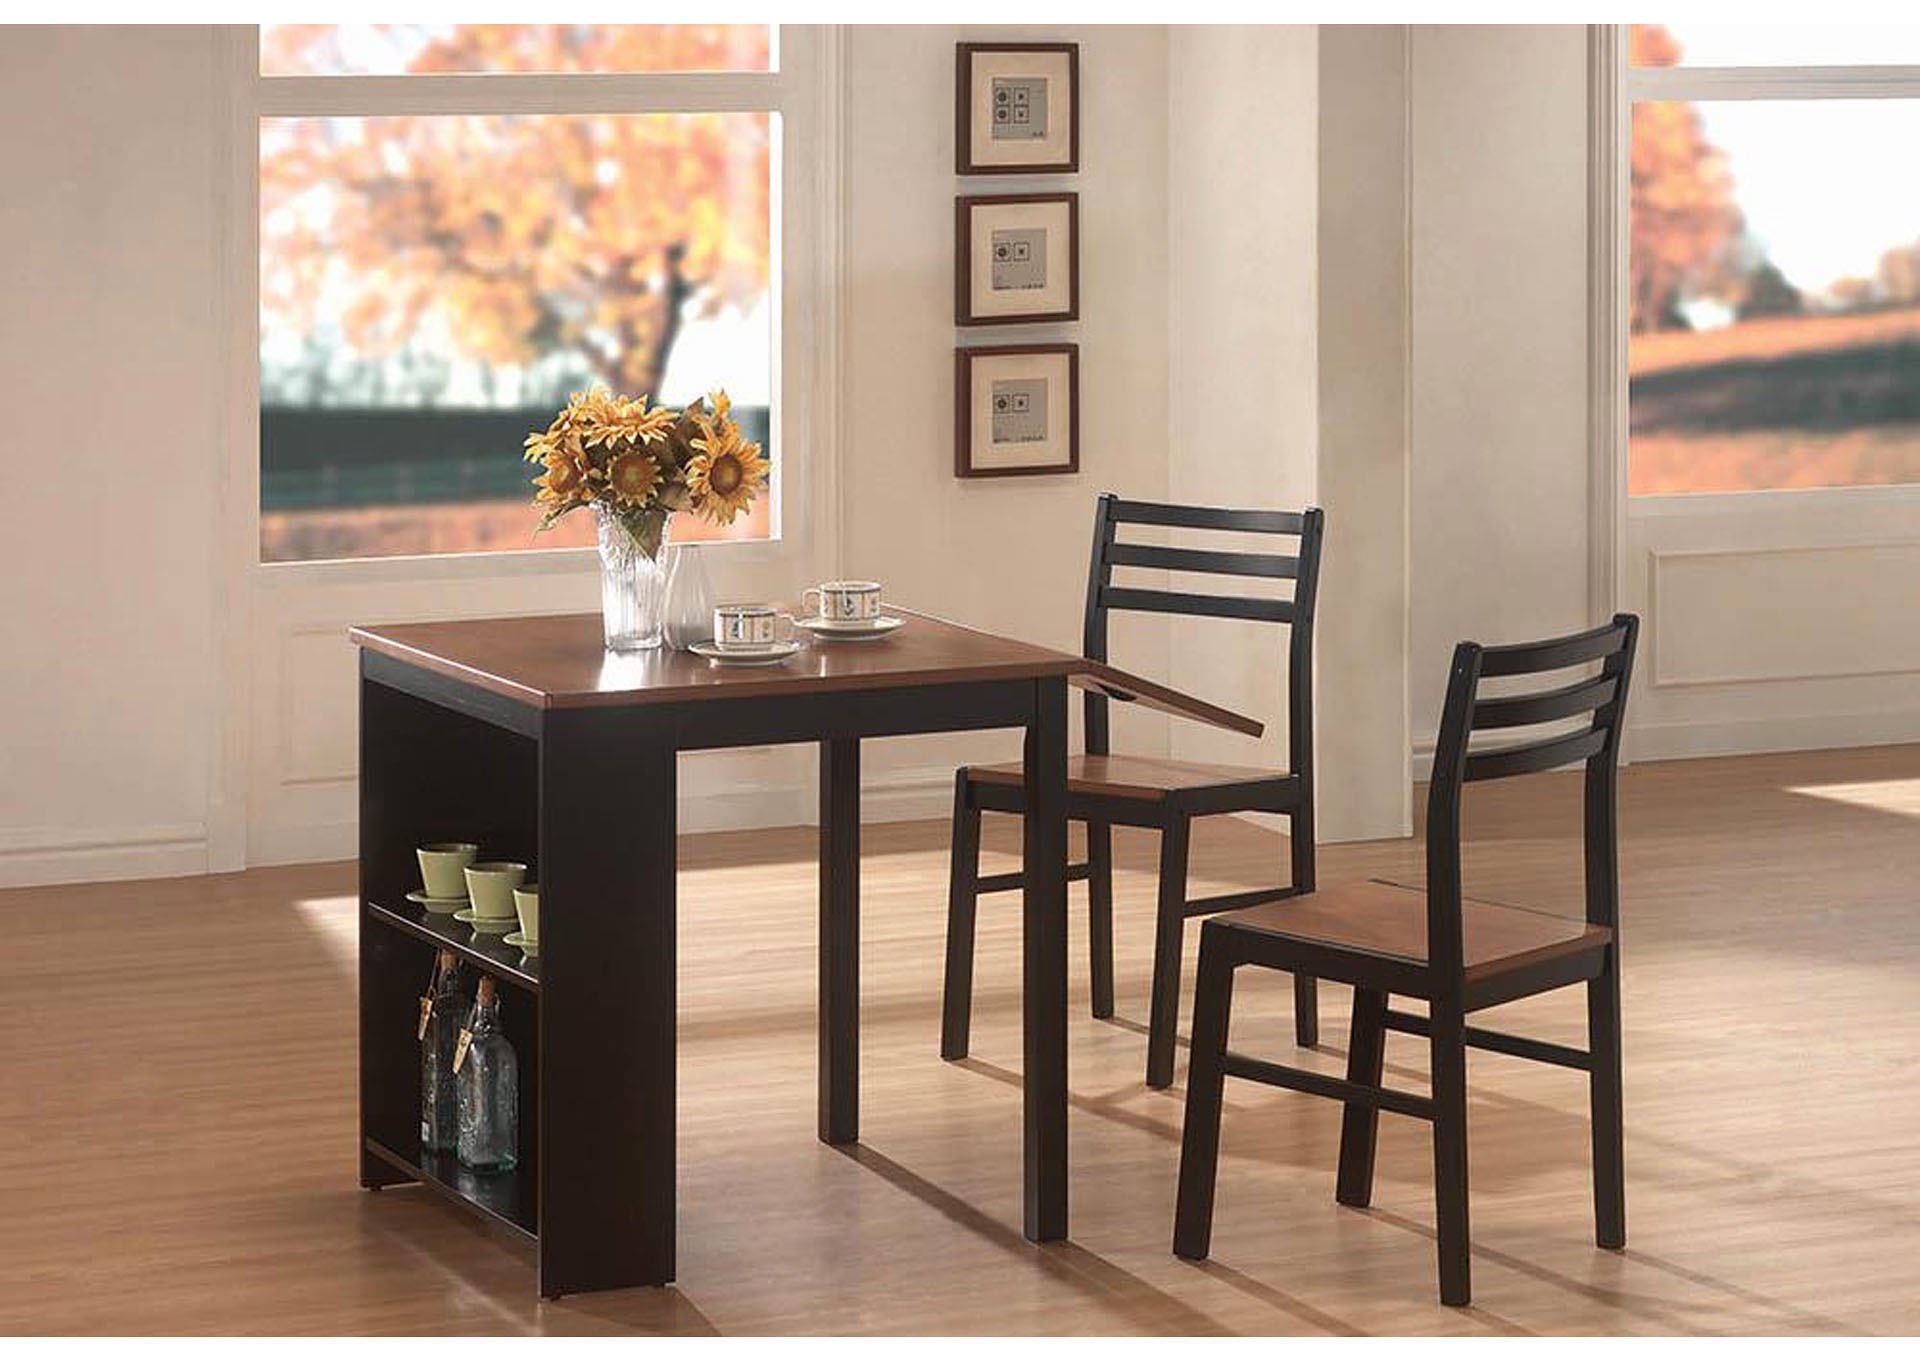 Two Tone Breakfast Table 3 Piece Set,Coaster Furniture